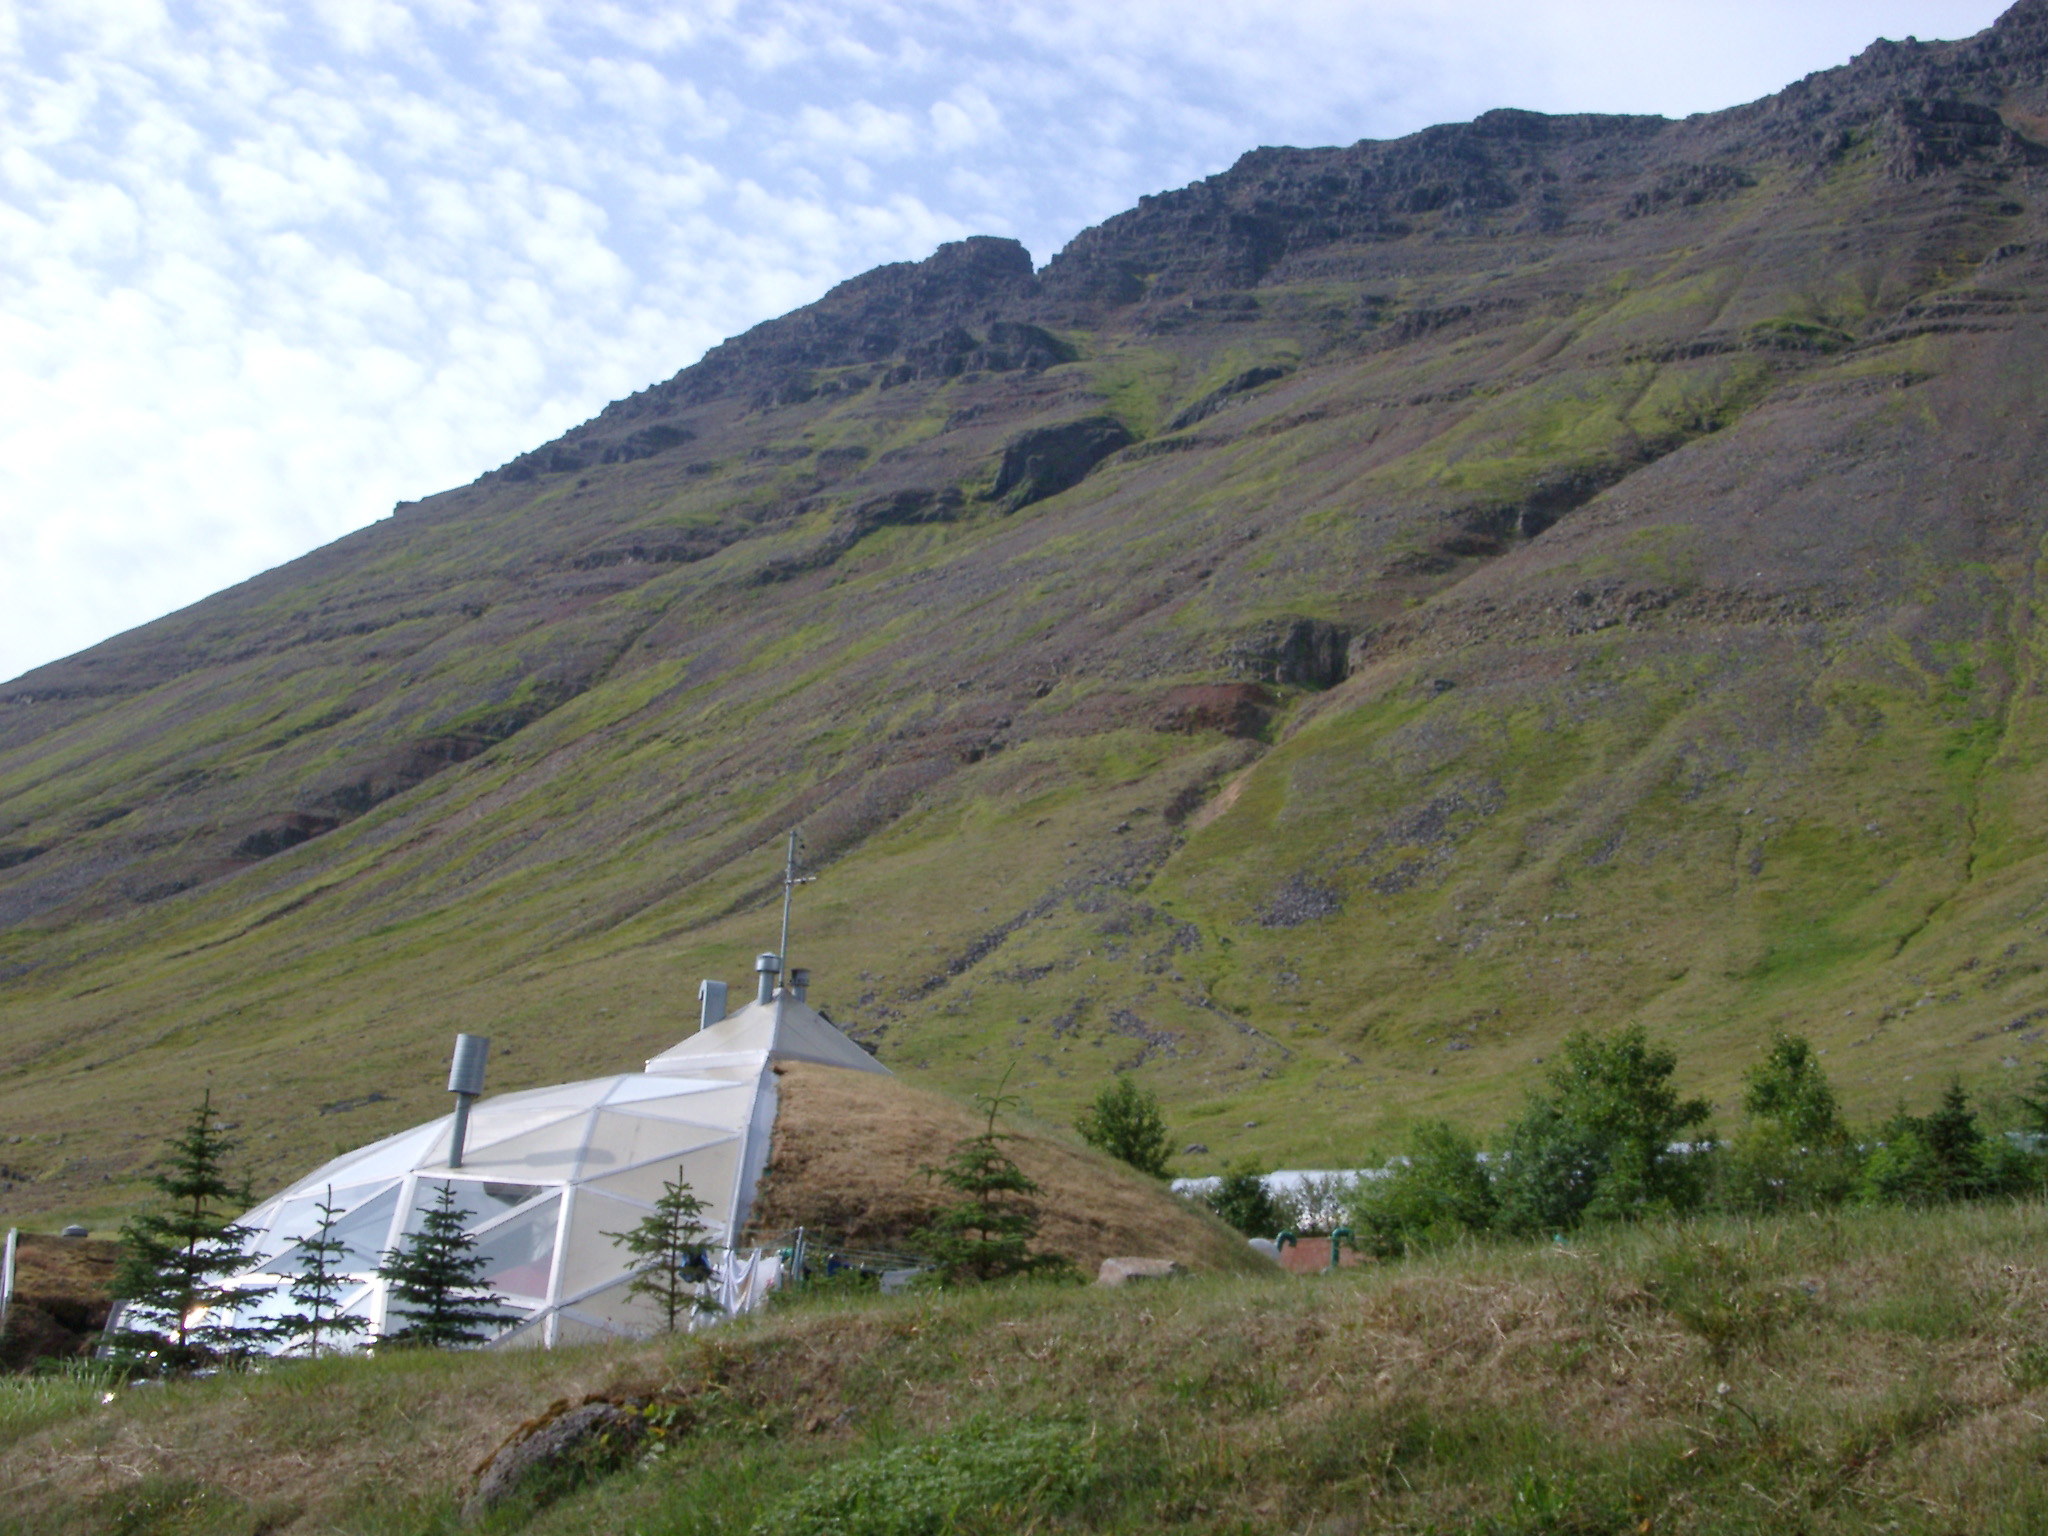 Environmentally friendly biodome, or dome house in Isafjordur in Iceland partially covered in turf built at the foot of a volcanic mountain